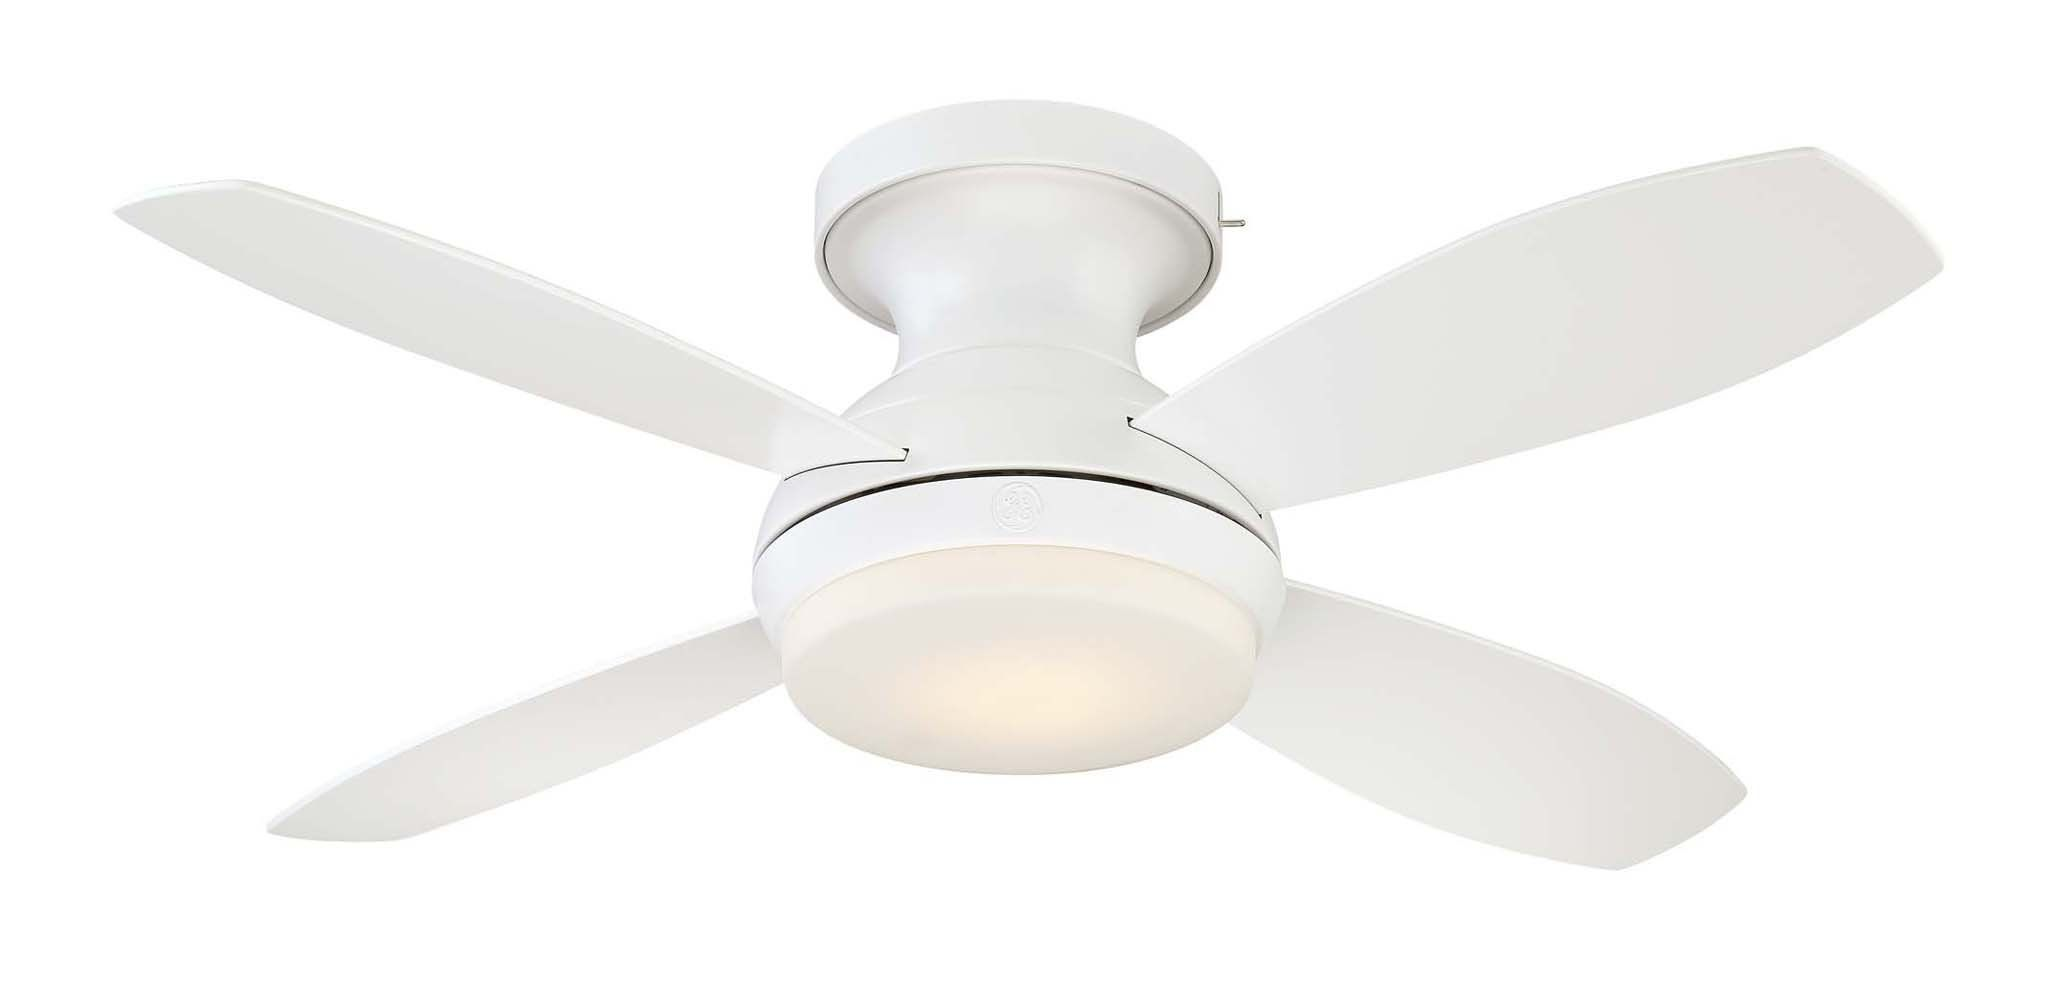 Ge Kinsey 44 White Led Indoor Ceiling Fan With Skyplug Technology For Instant Plug And Play Mounting See T In 2020 Ceiling Fan Modern Ceiling Fan Fan Installation